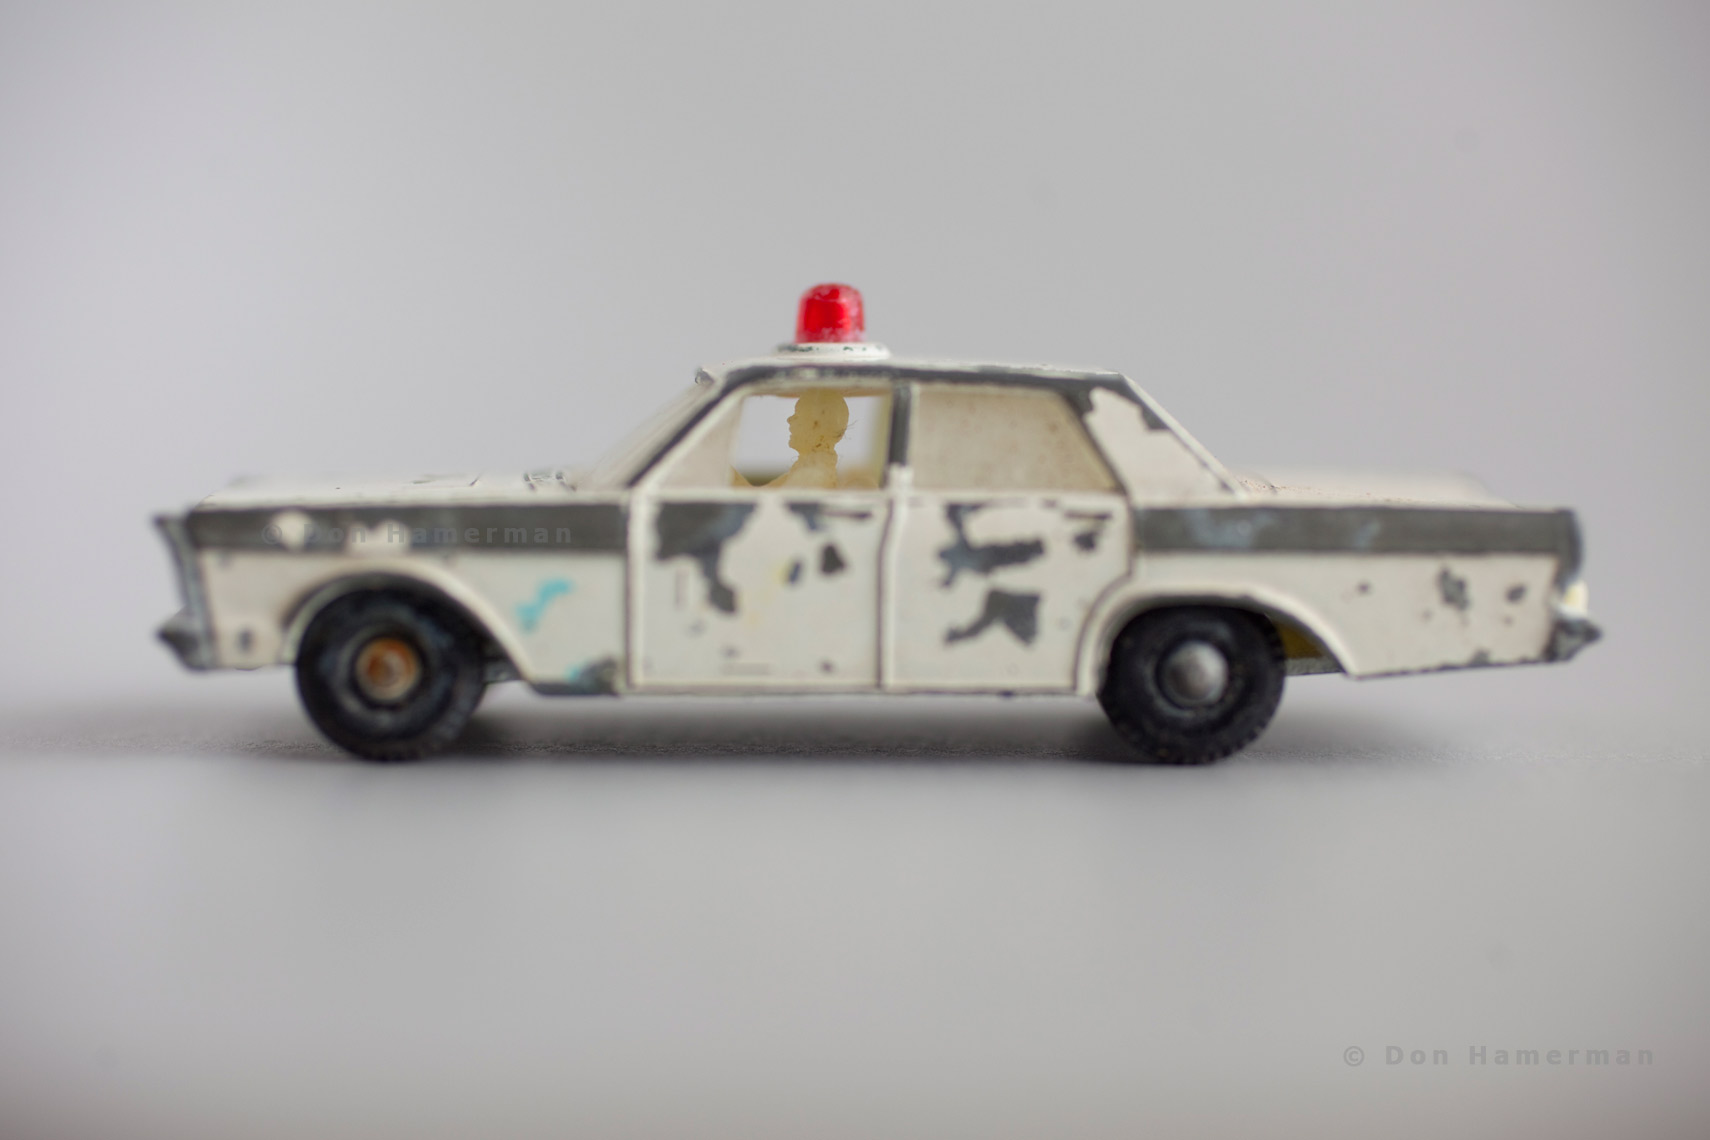 02_hamerman_matchbox.jpg